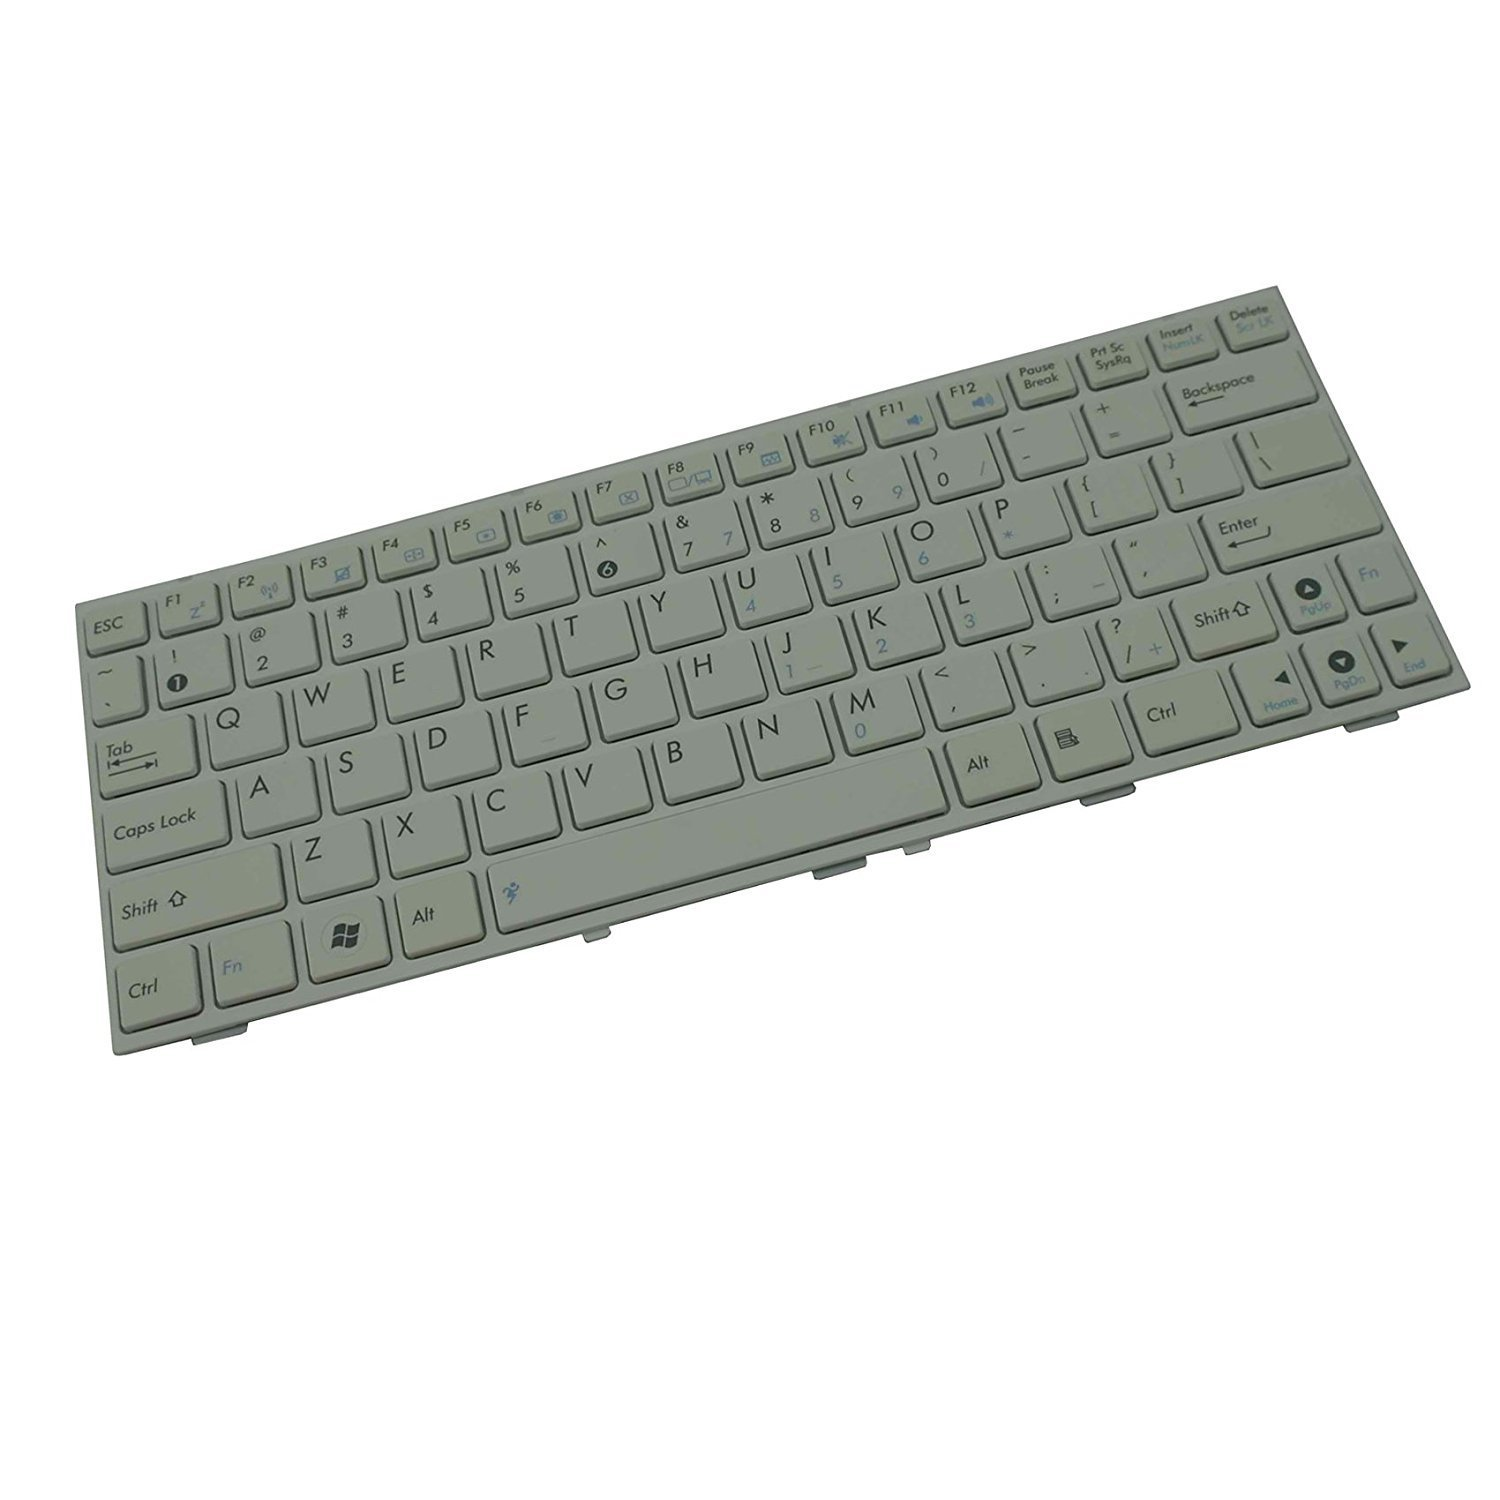 YEECHUN White US Keyboard for ASUS EEE PC EPC 1005PE 1005PEB 1005PE-B 1001P 1001PX 1005p 1005PX 1001PQD 1001PXD 1001HAG T101MT Series New Notebook Replacement Accessoriess